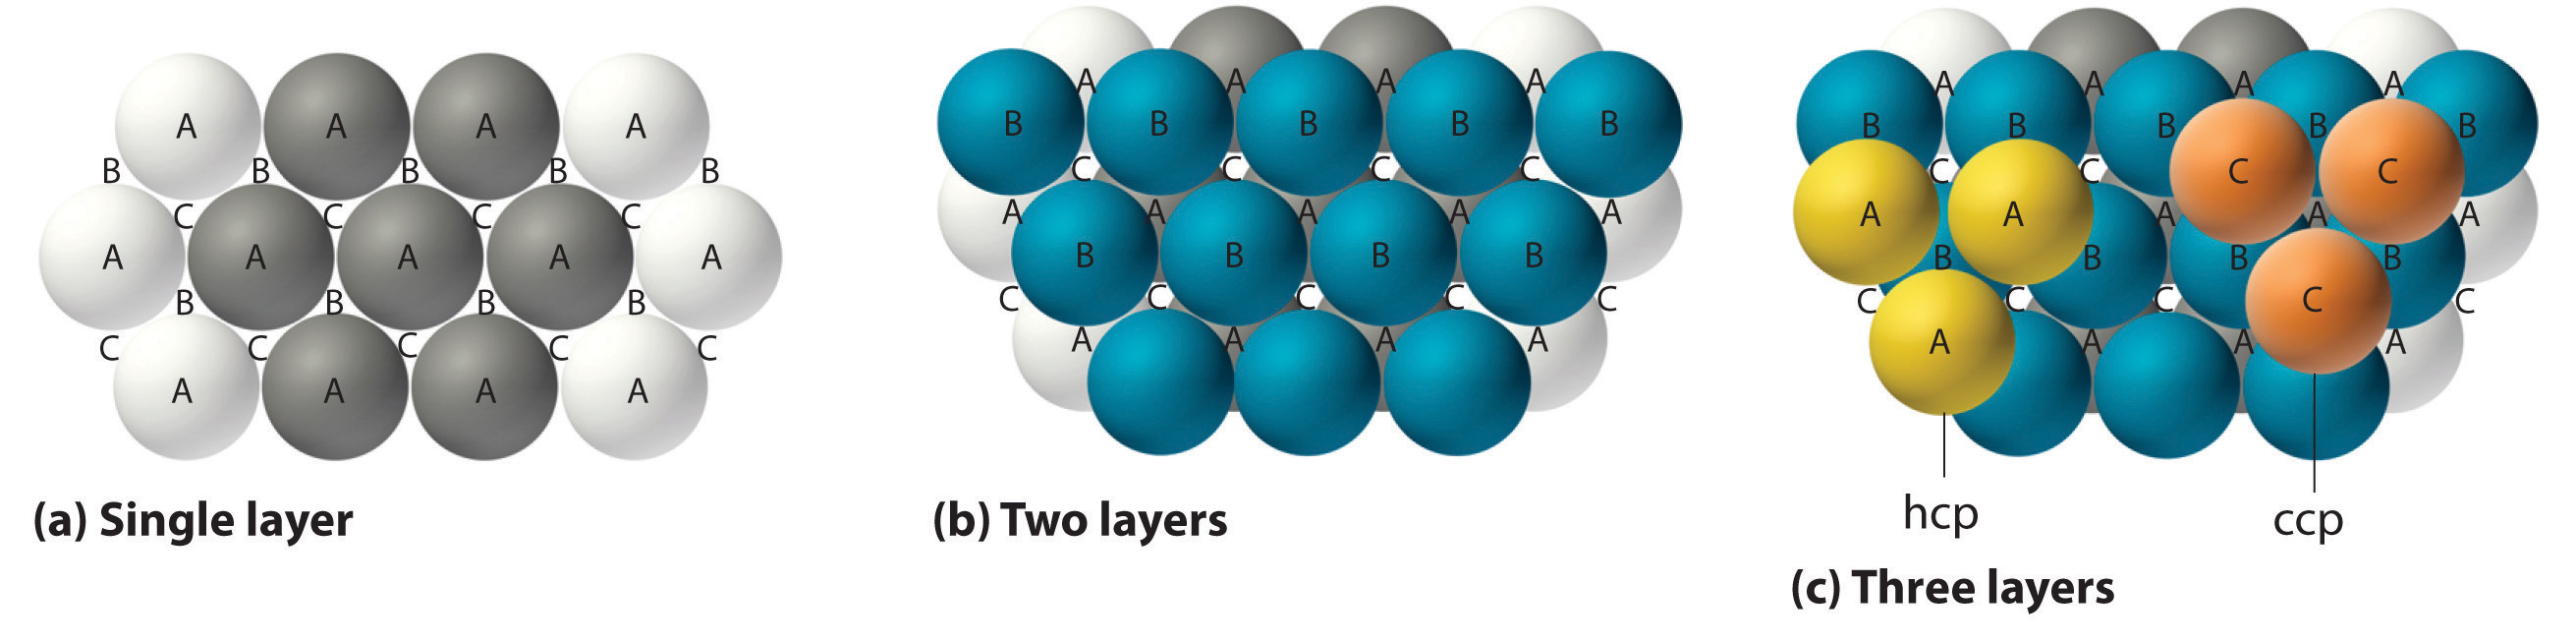 The Arrangement Of Atoms In Crystalline Solids At Diagram Below Which Shows Parts Inside One Hexagonal Close Packed And Cubic Structures